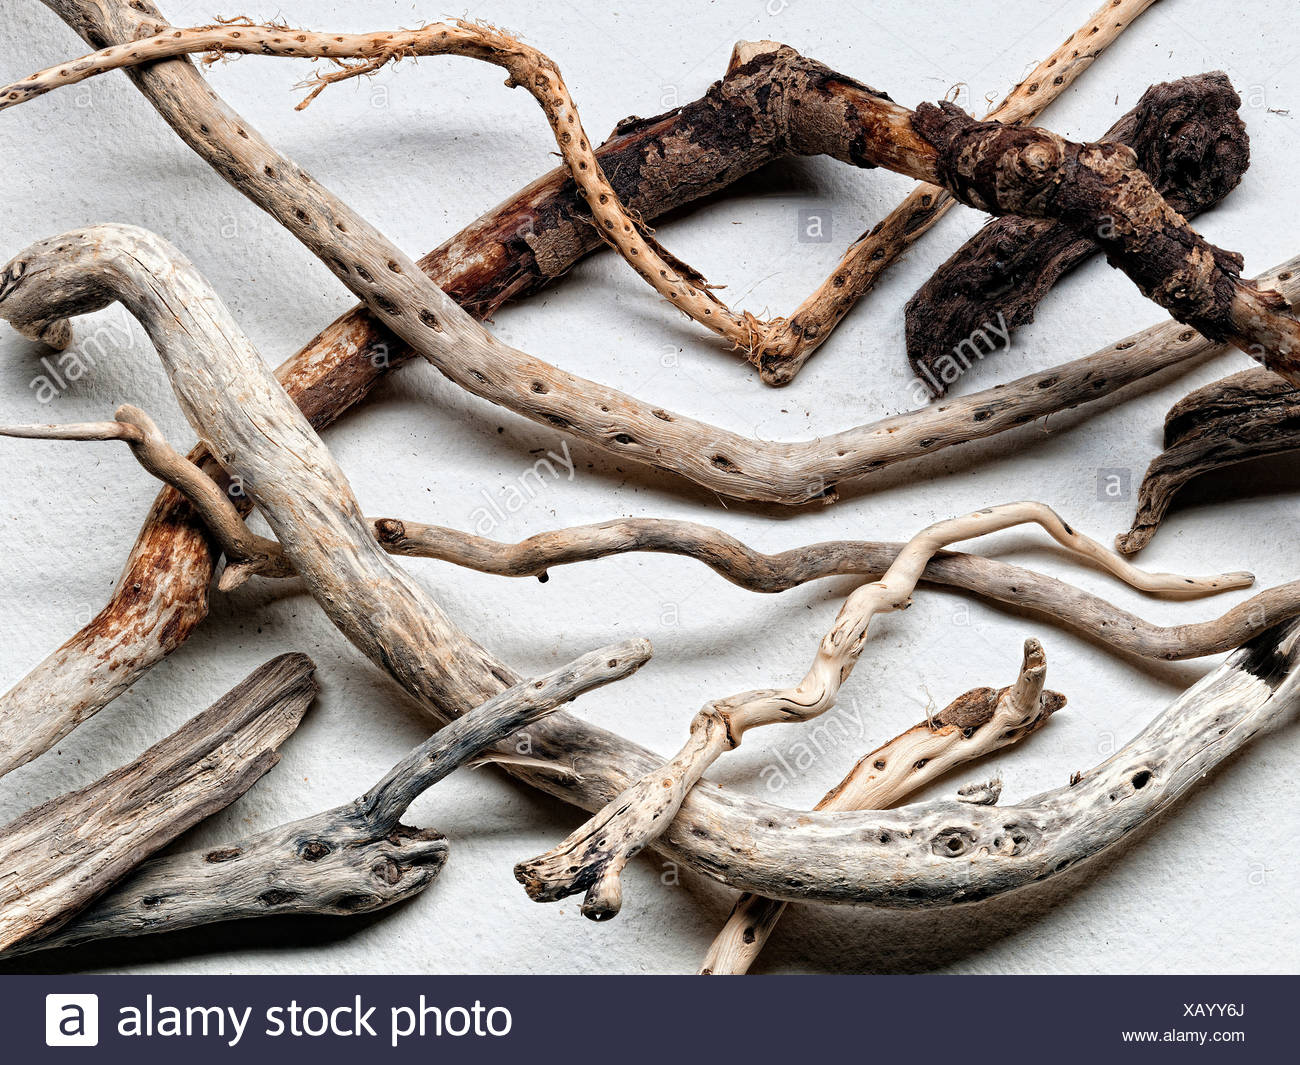 Pieces of driftwood - Stock Image